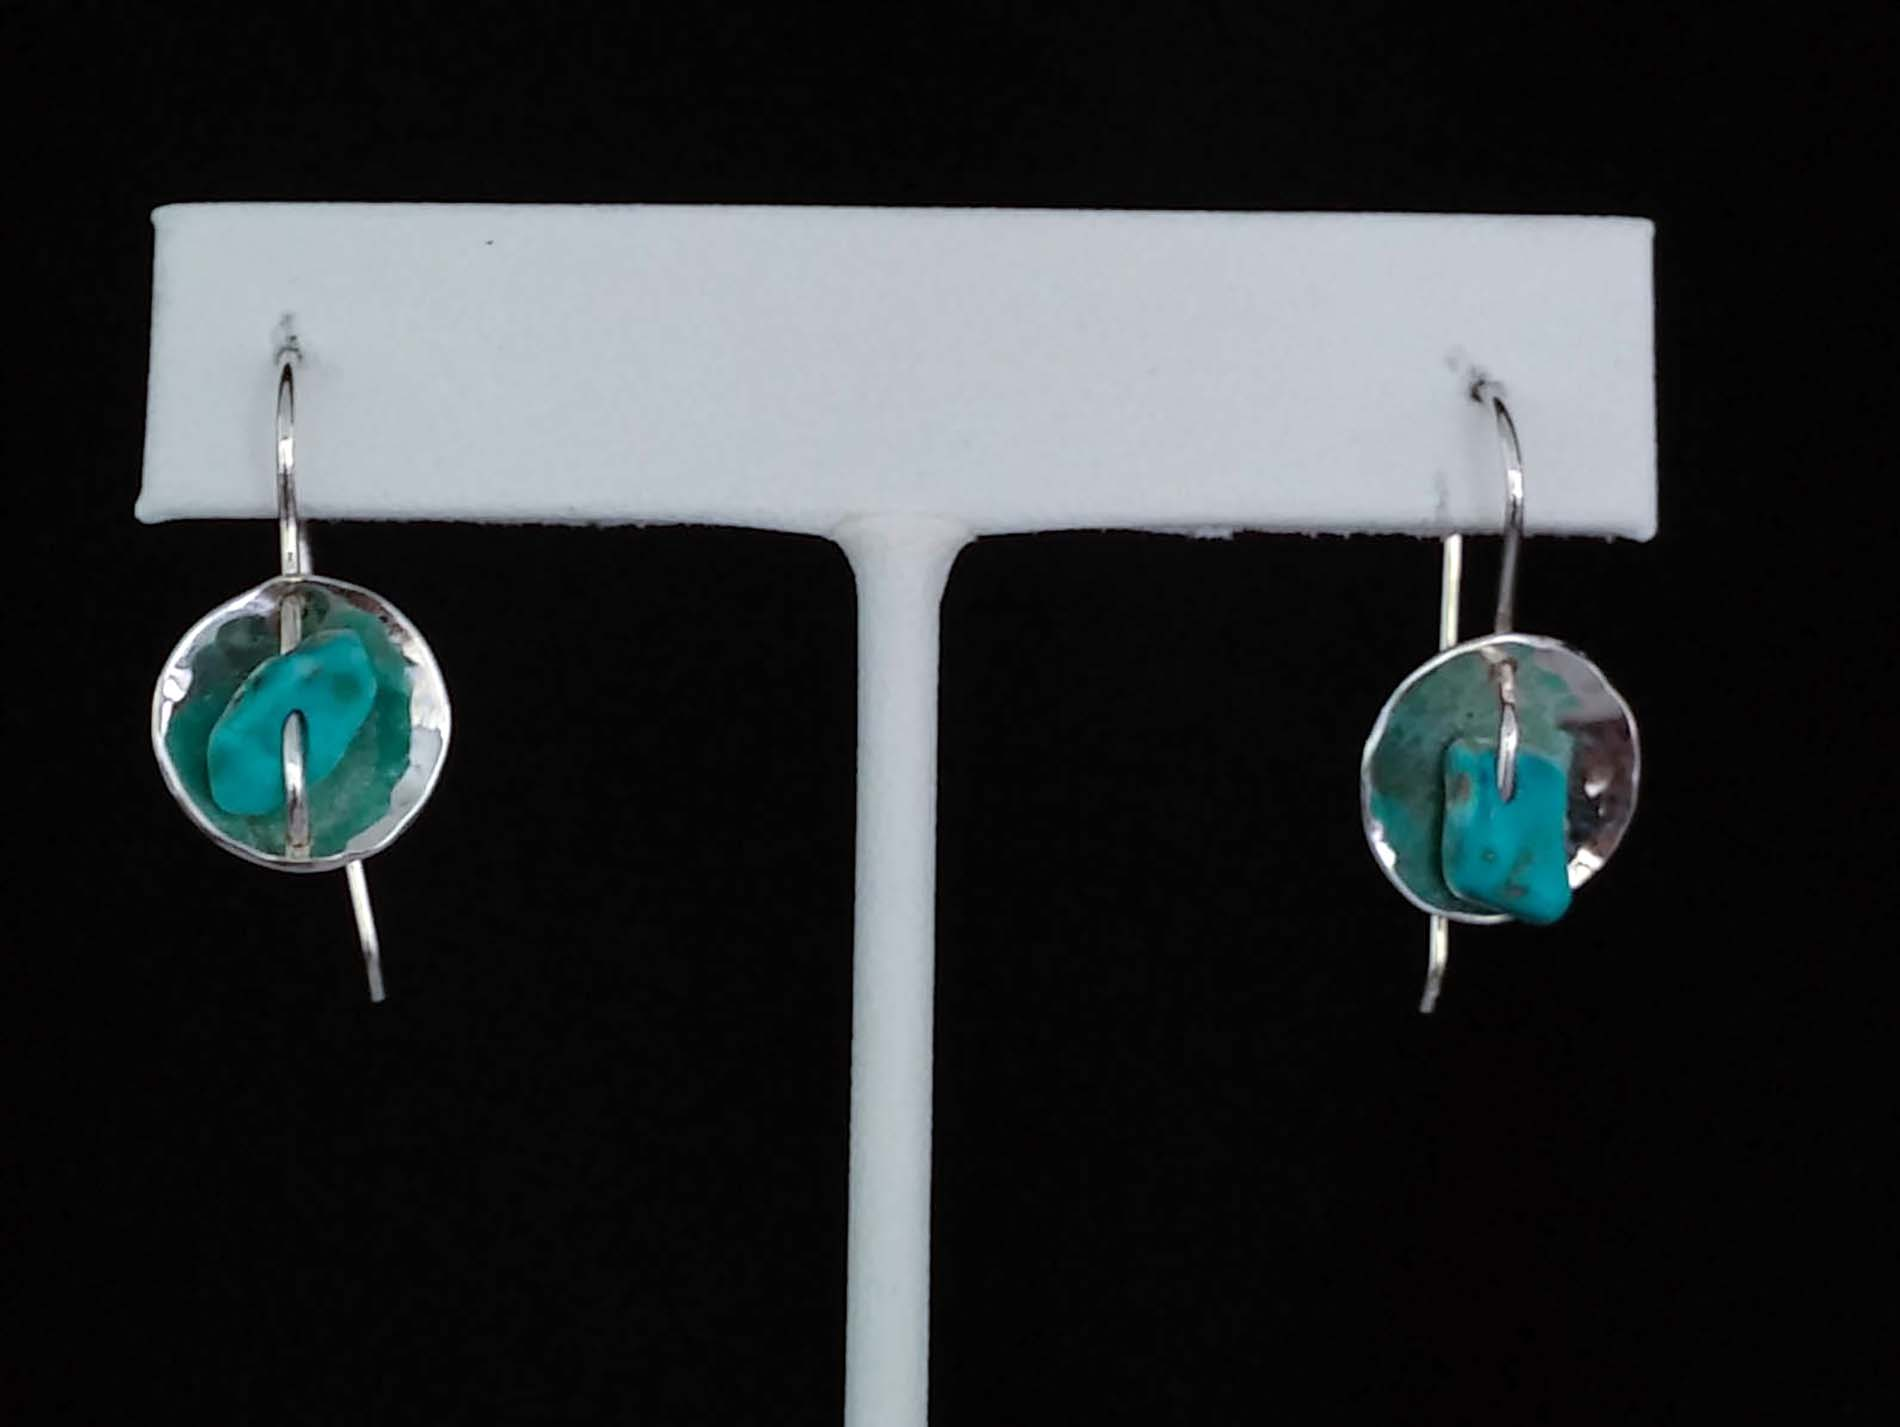 Lantern Earring with Turquoise Beads